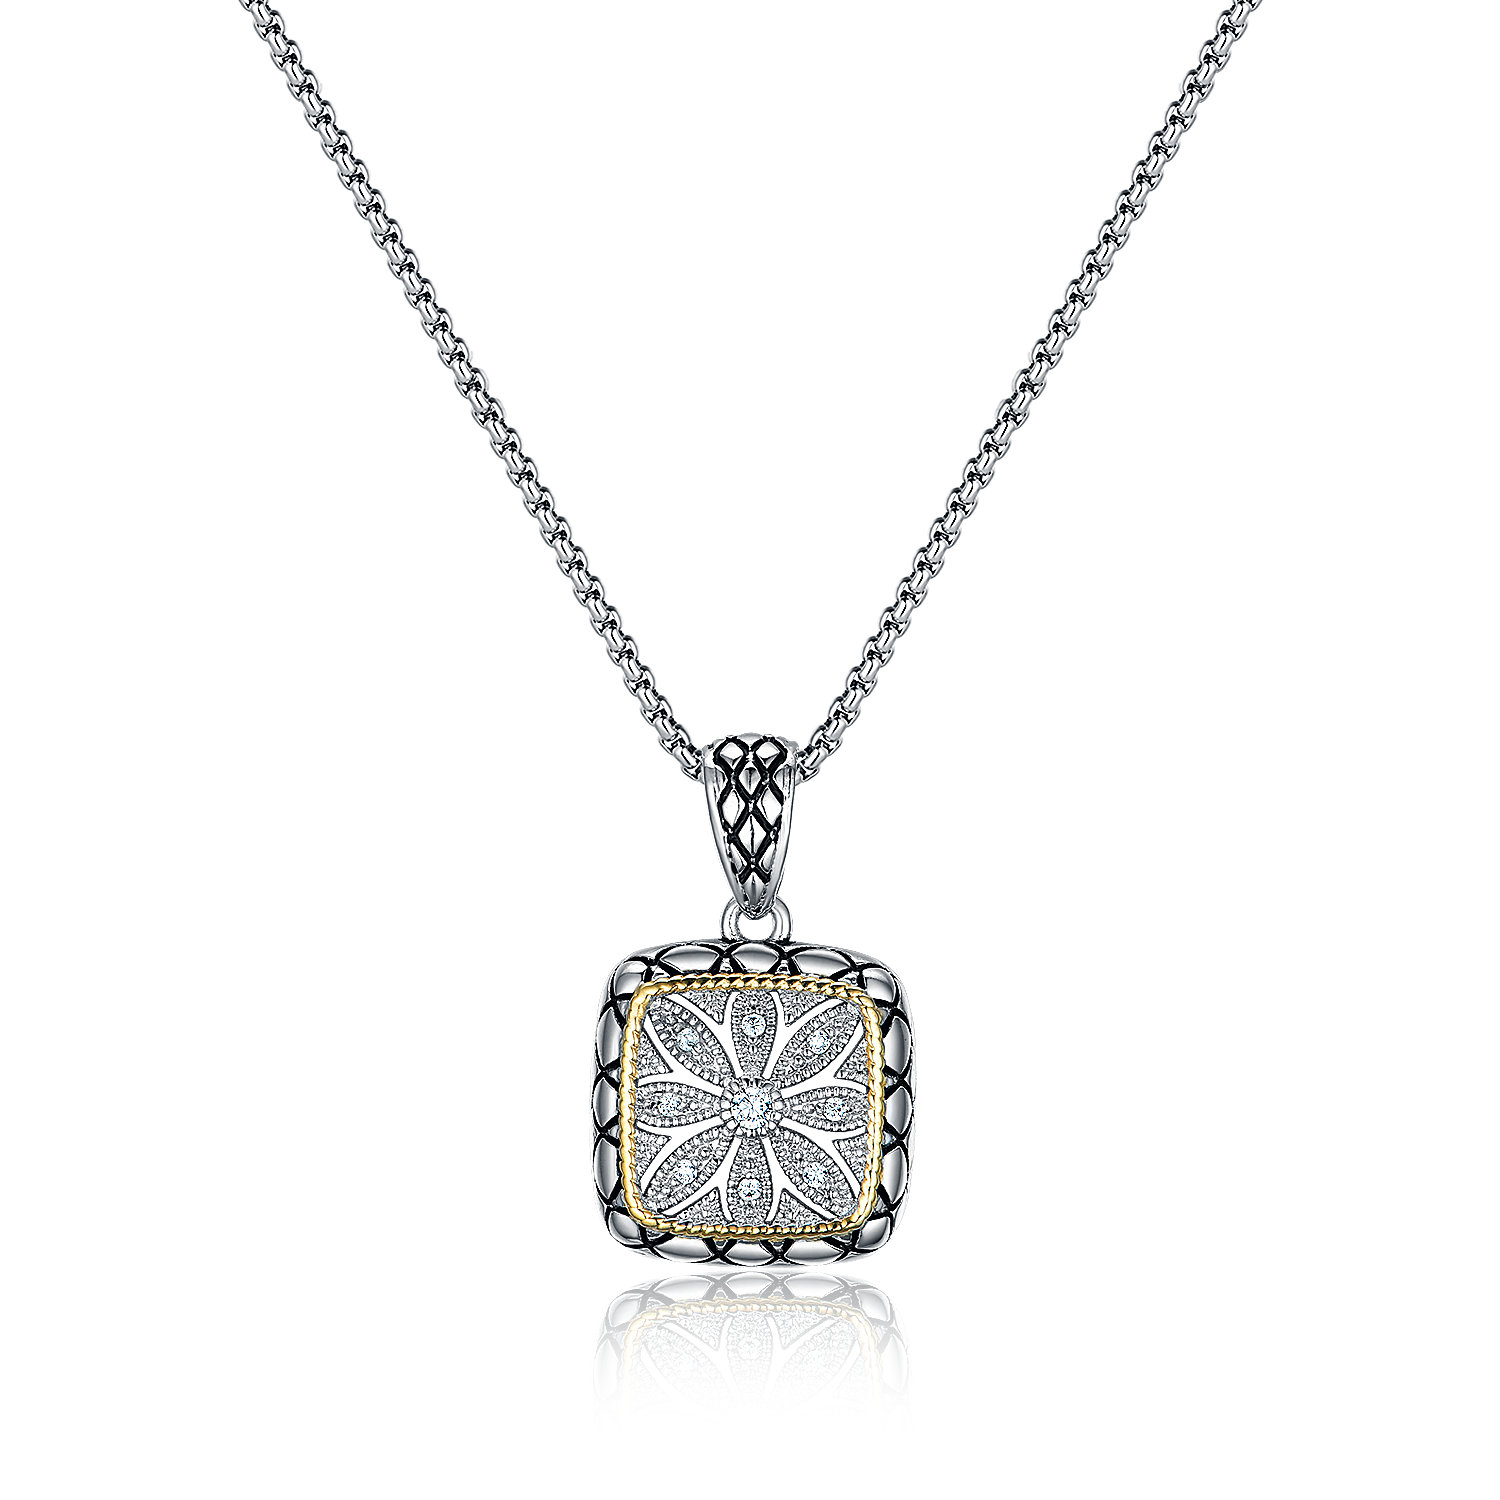 ST2767P-Designer inspired 2-tone Squre Pendant with diamond shape texture in brass  suspends a 18inch box chain with  2